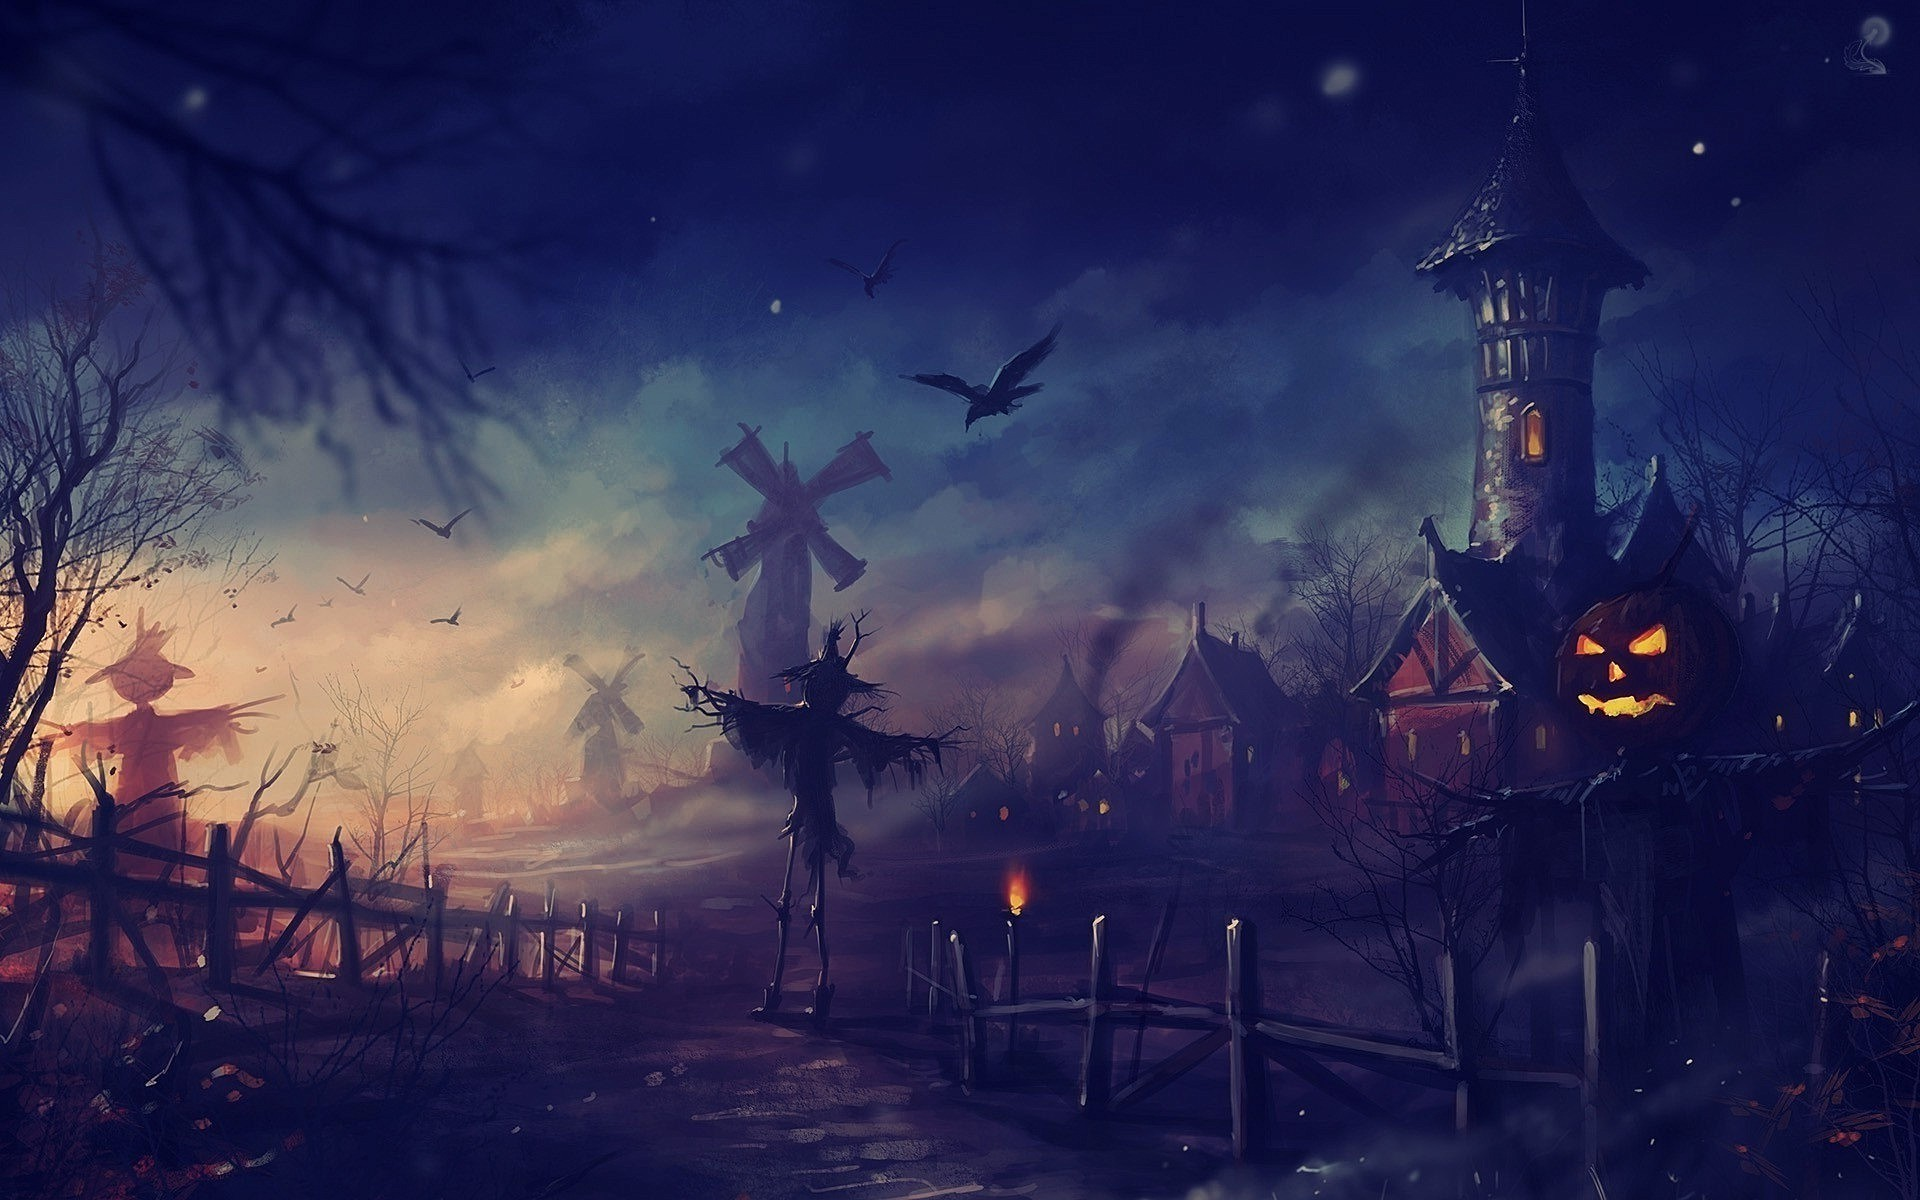 Halloween Night Animated Wallpaper This Is The Image Displayed .